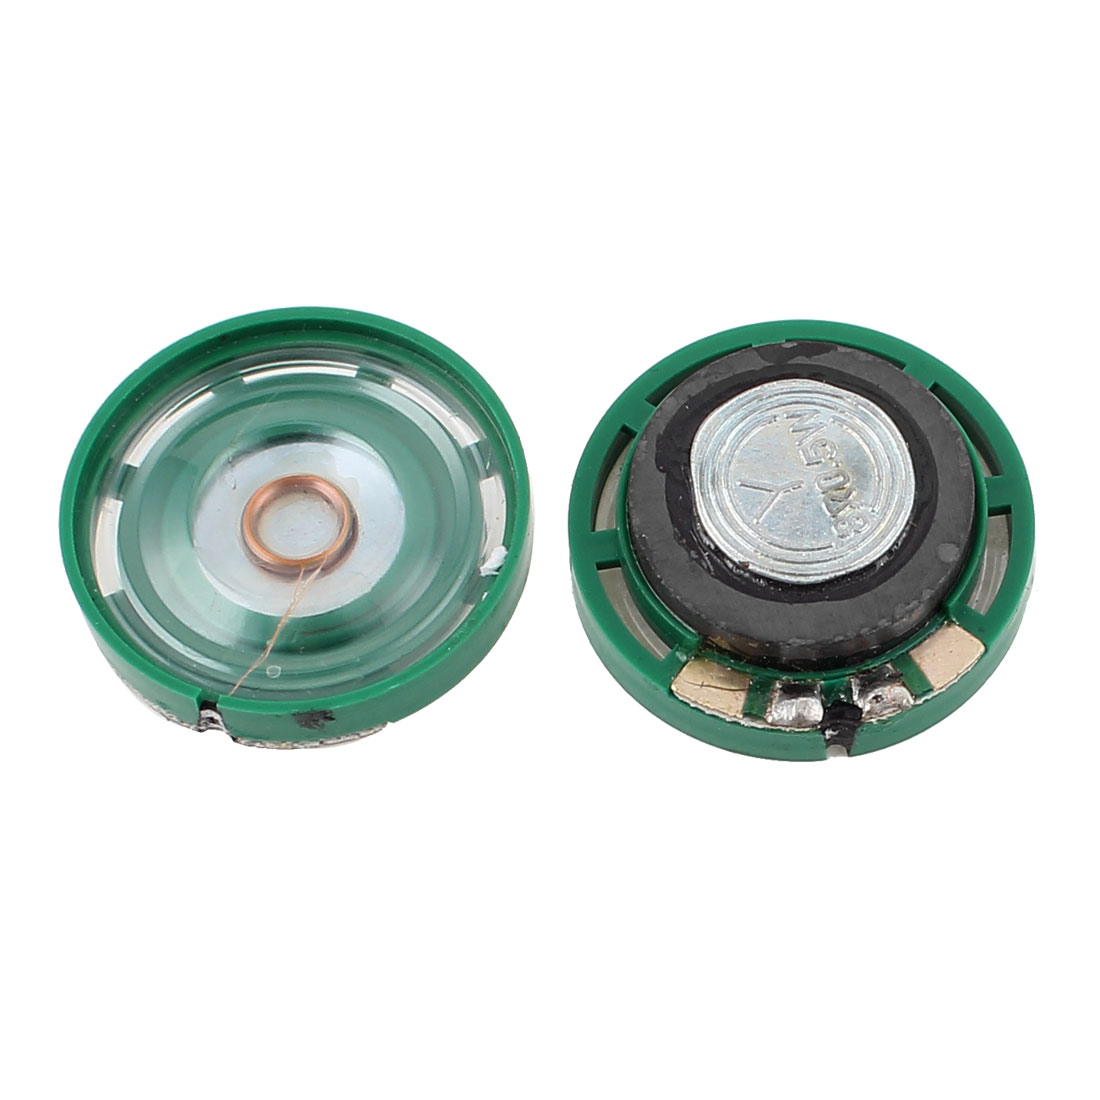 2 Pcs 0.25W 8 Ohm 29mm Outside Magnet Electronic Speaker Loudspeaker Green